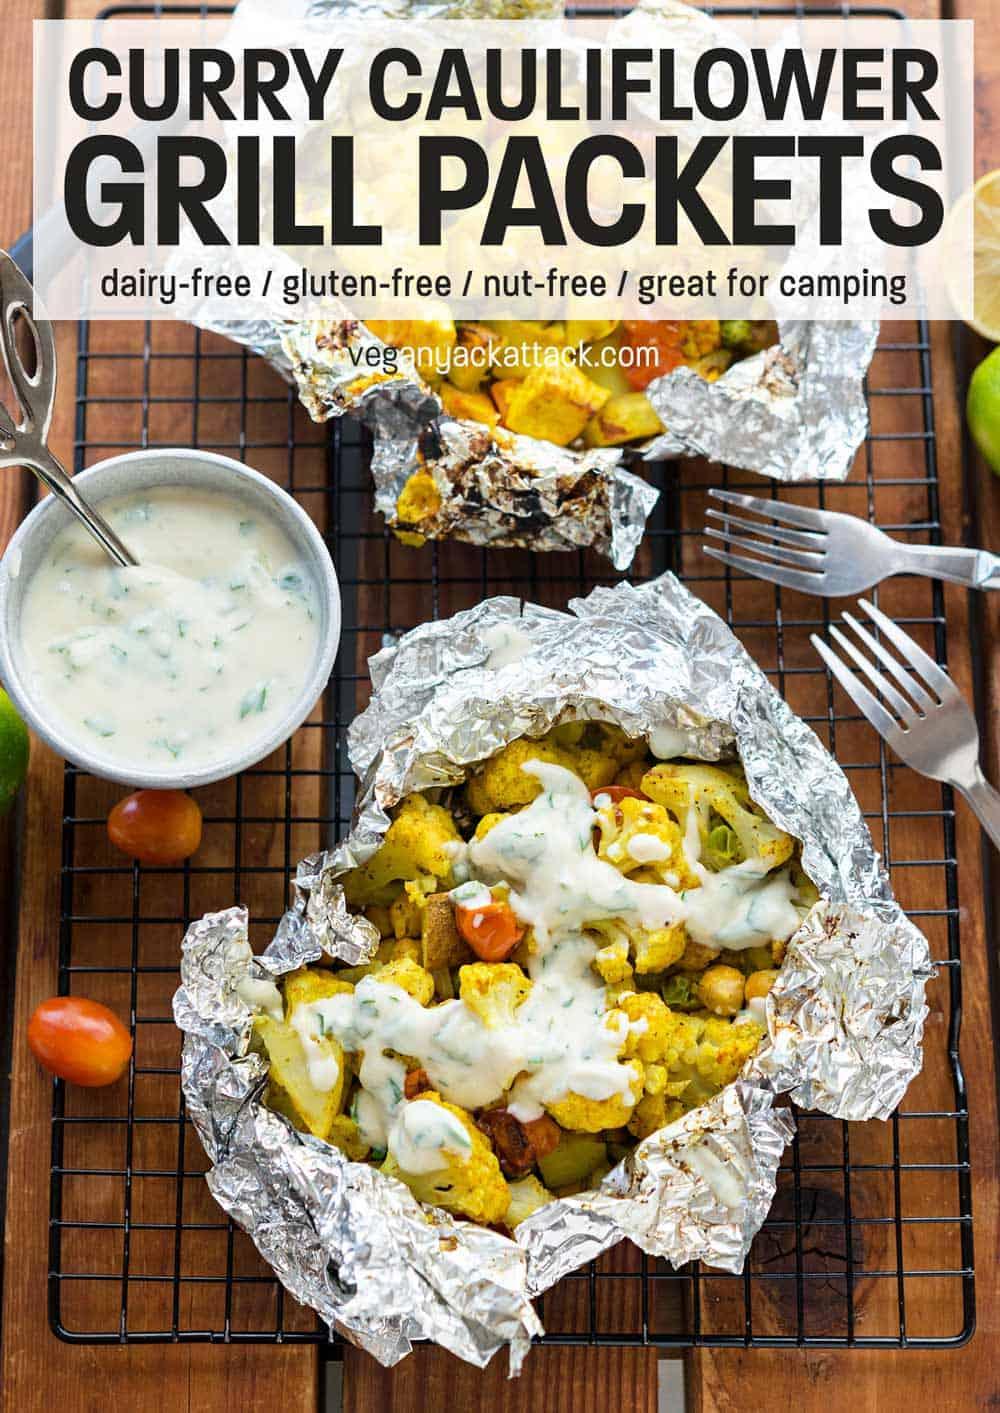 Grill packet filled with curry cauliflower veggie mixture topped with yogurt sauce